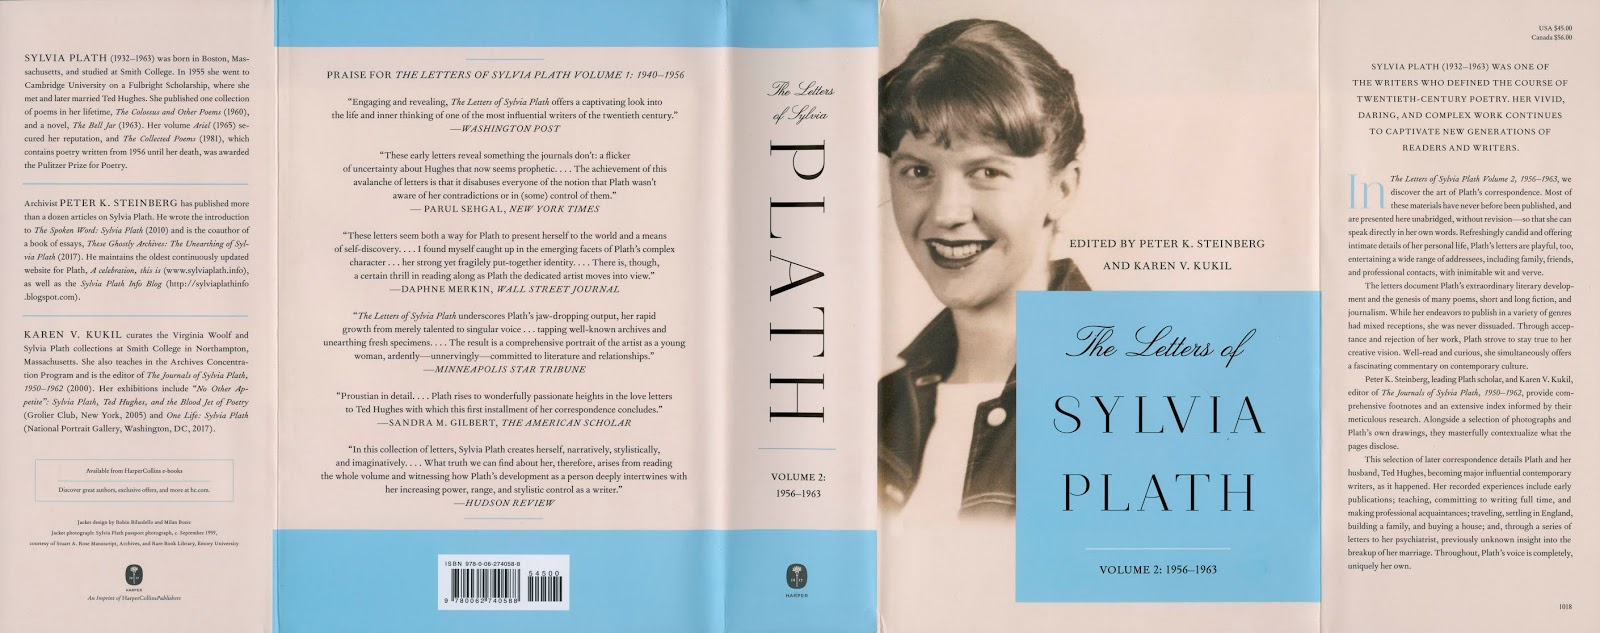 the letters of sylvia plath volume 2 1956 1963 published today